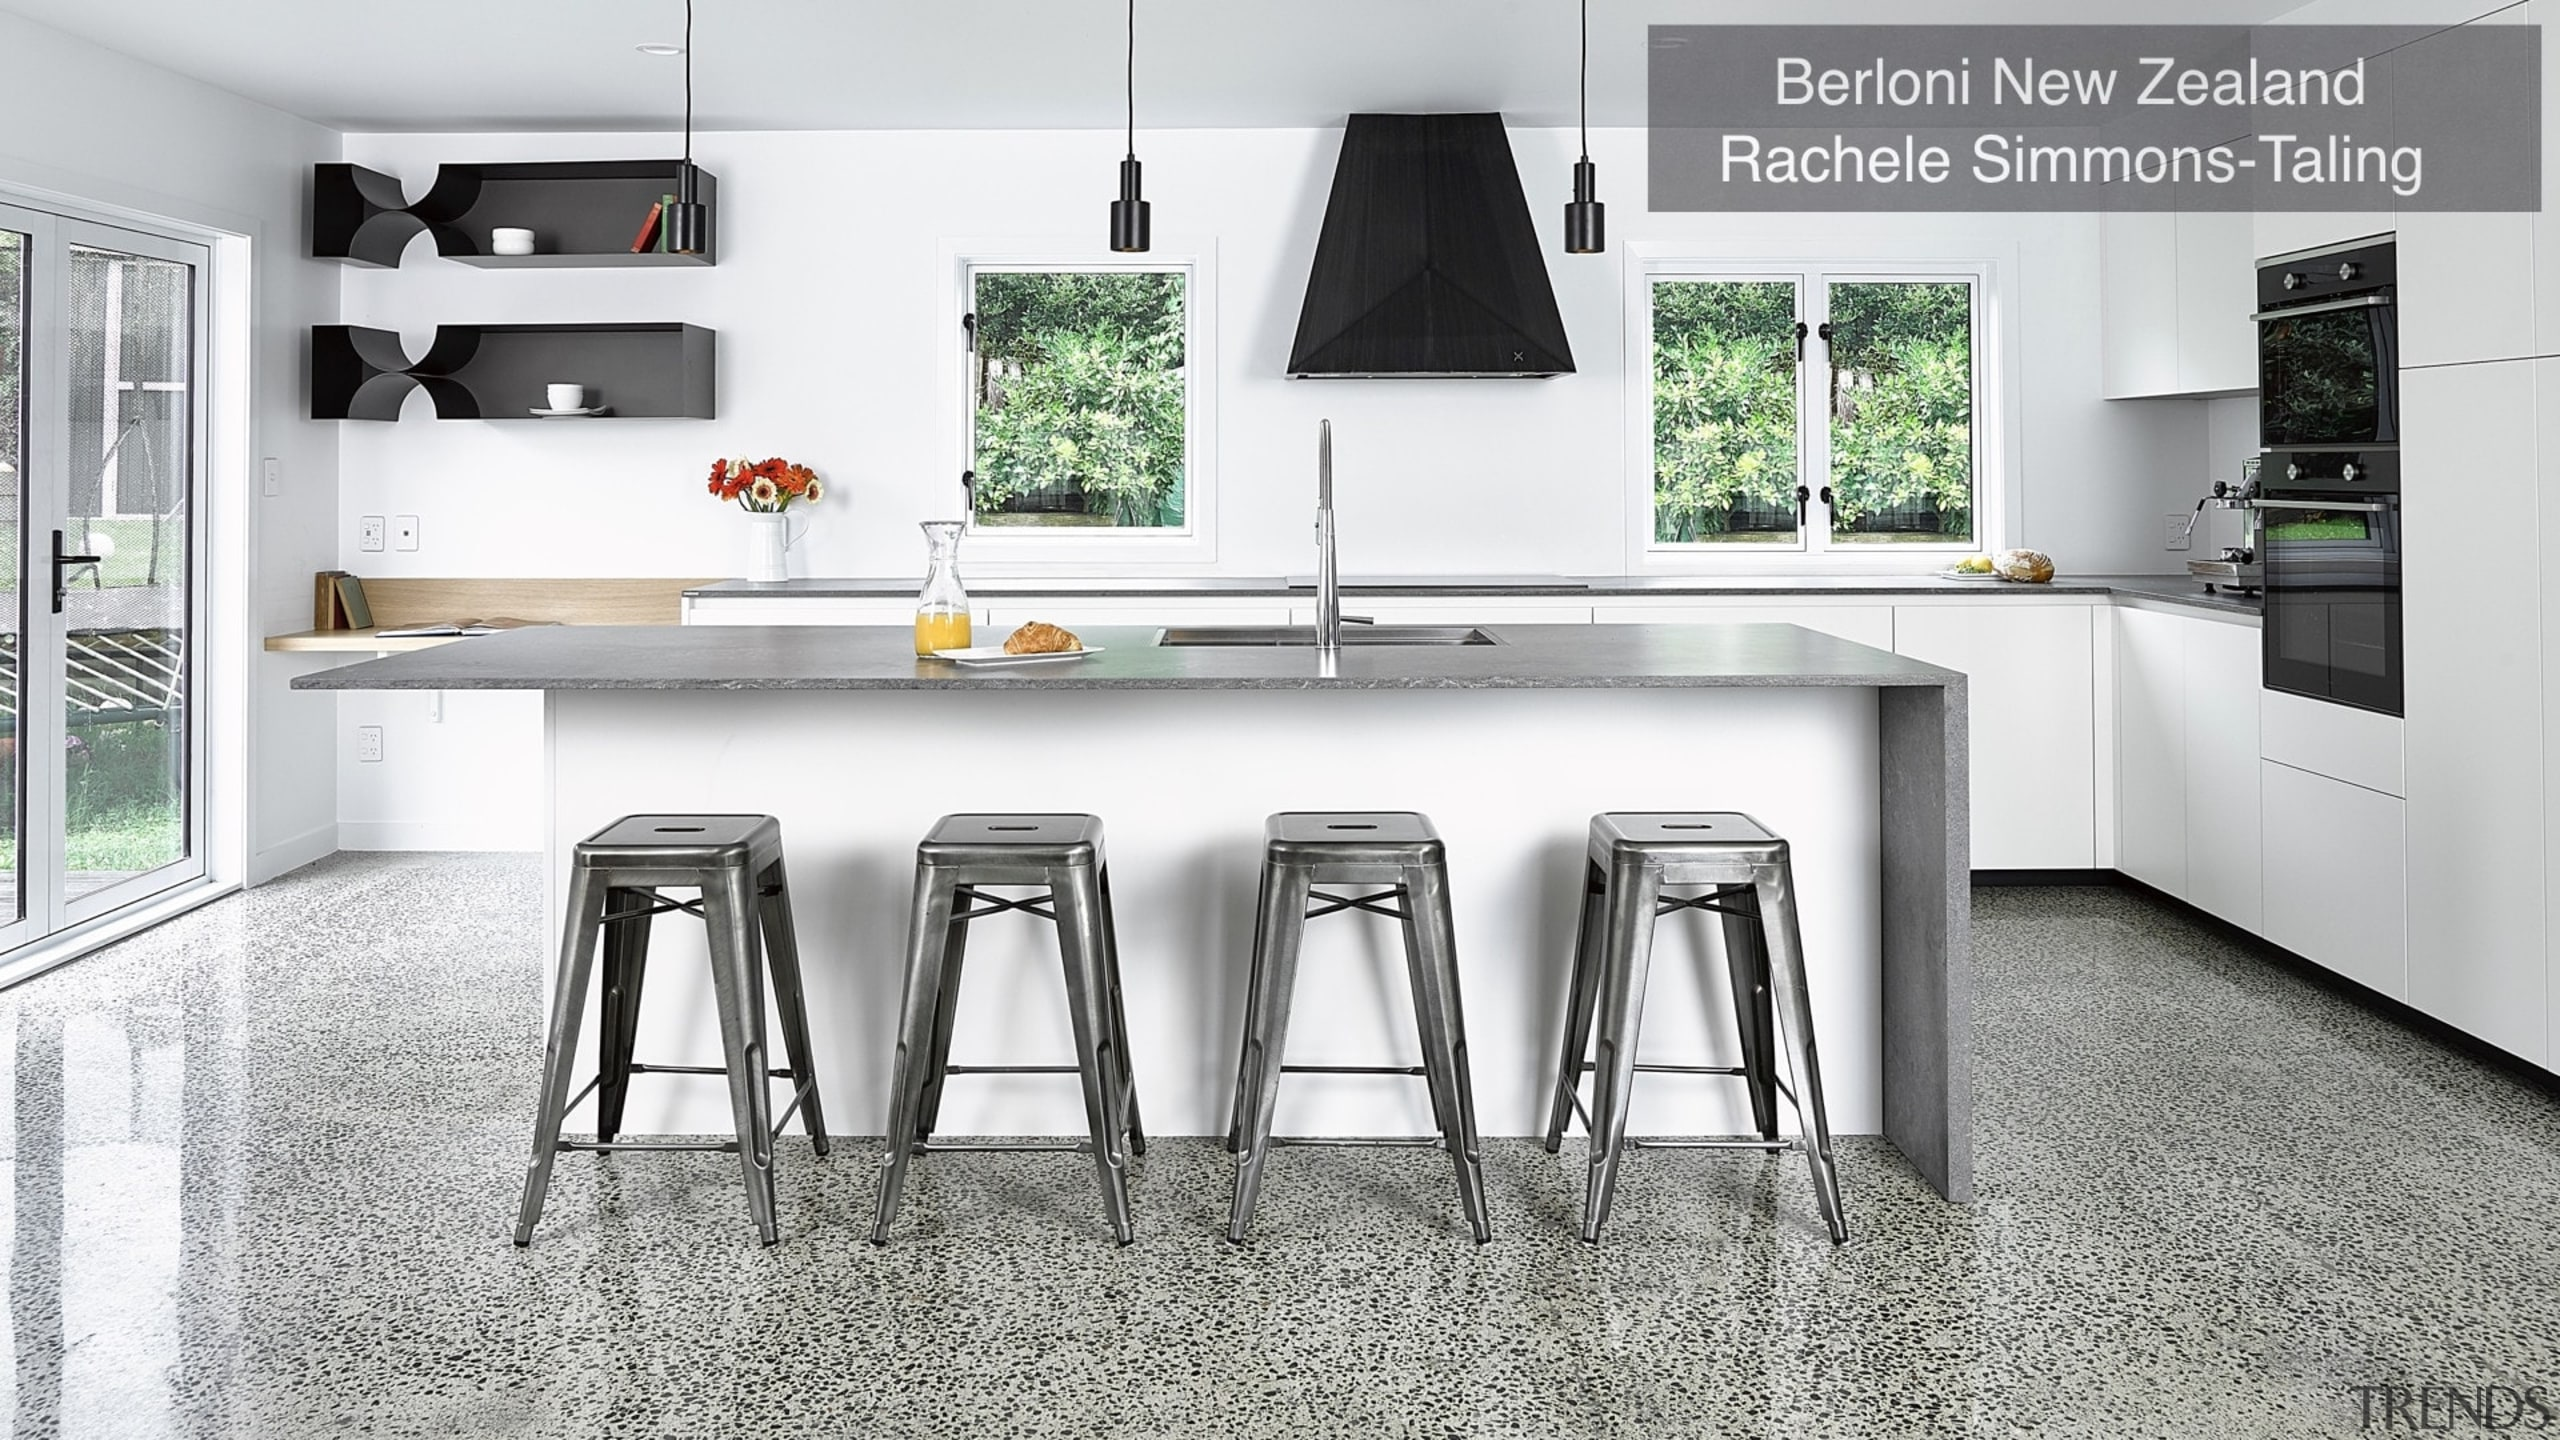 Highly Commended – Berloni New Zealand Rachele Simmons countertop, cuisine classique, floor, flooring, furniture, interior design, kitchen, product, table, white, gray